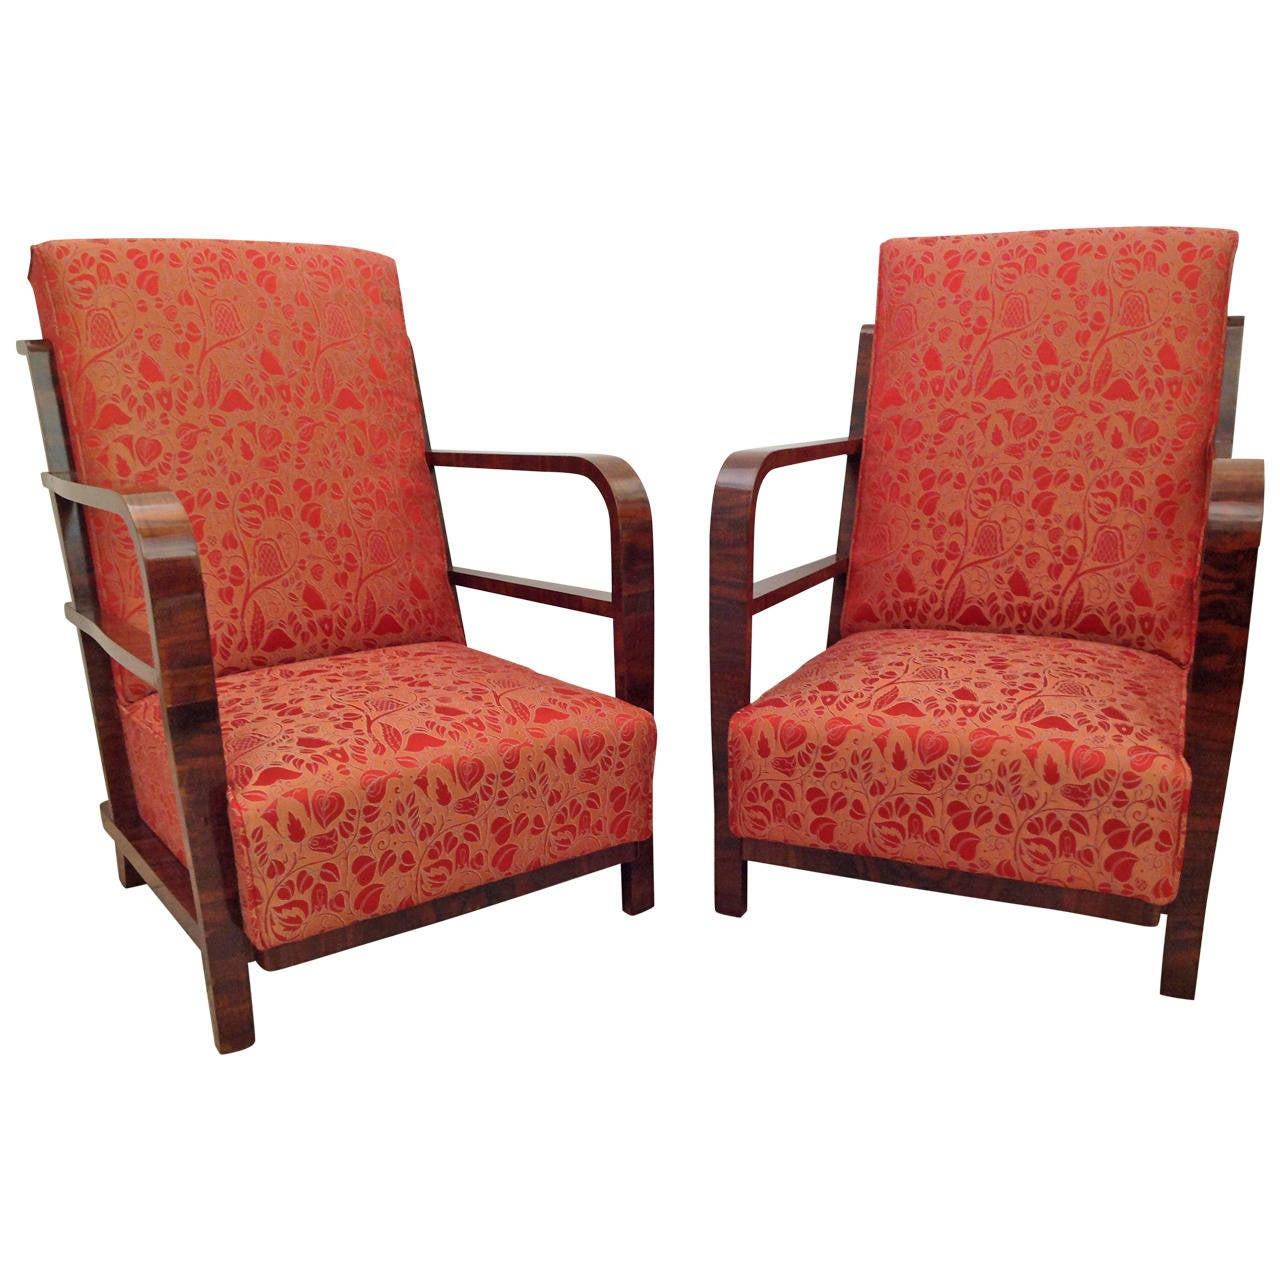 Pair of Art Deco Armchairs, circa 1930